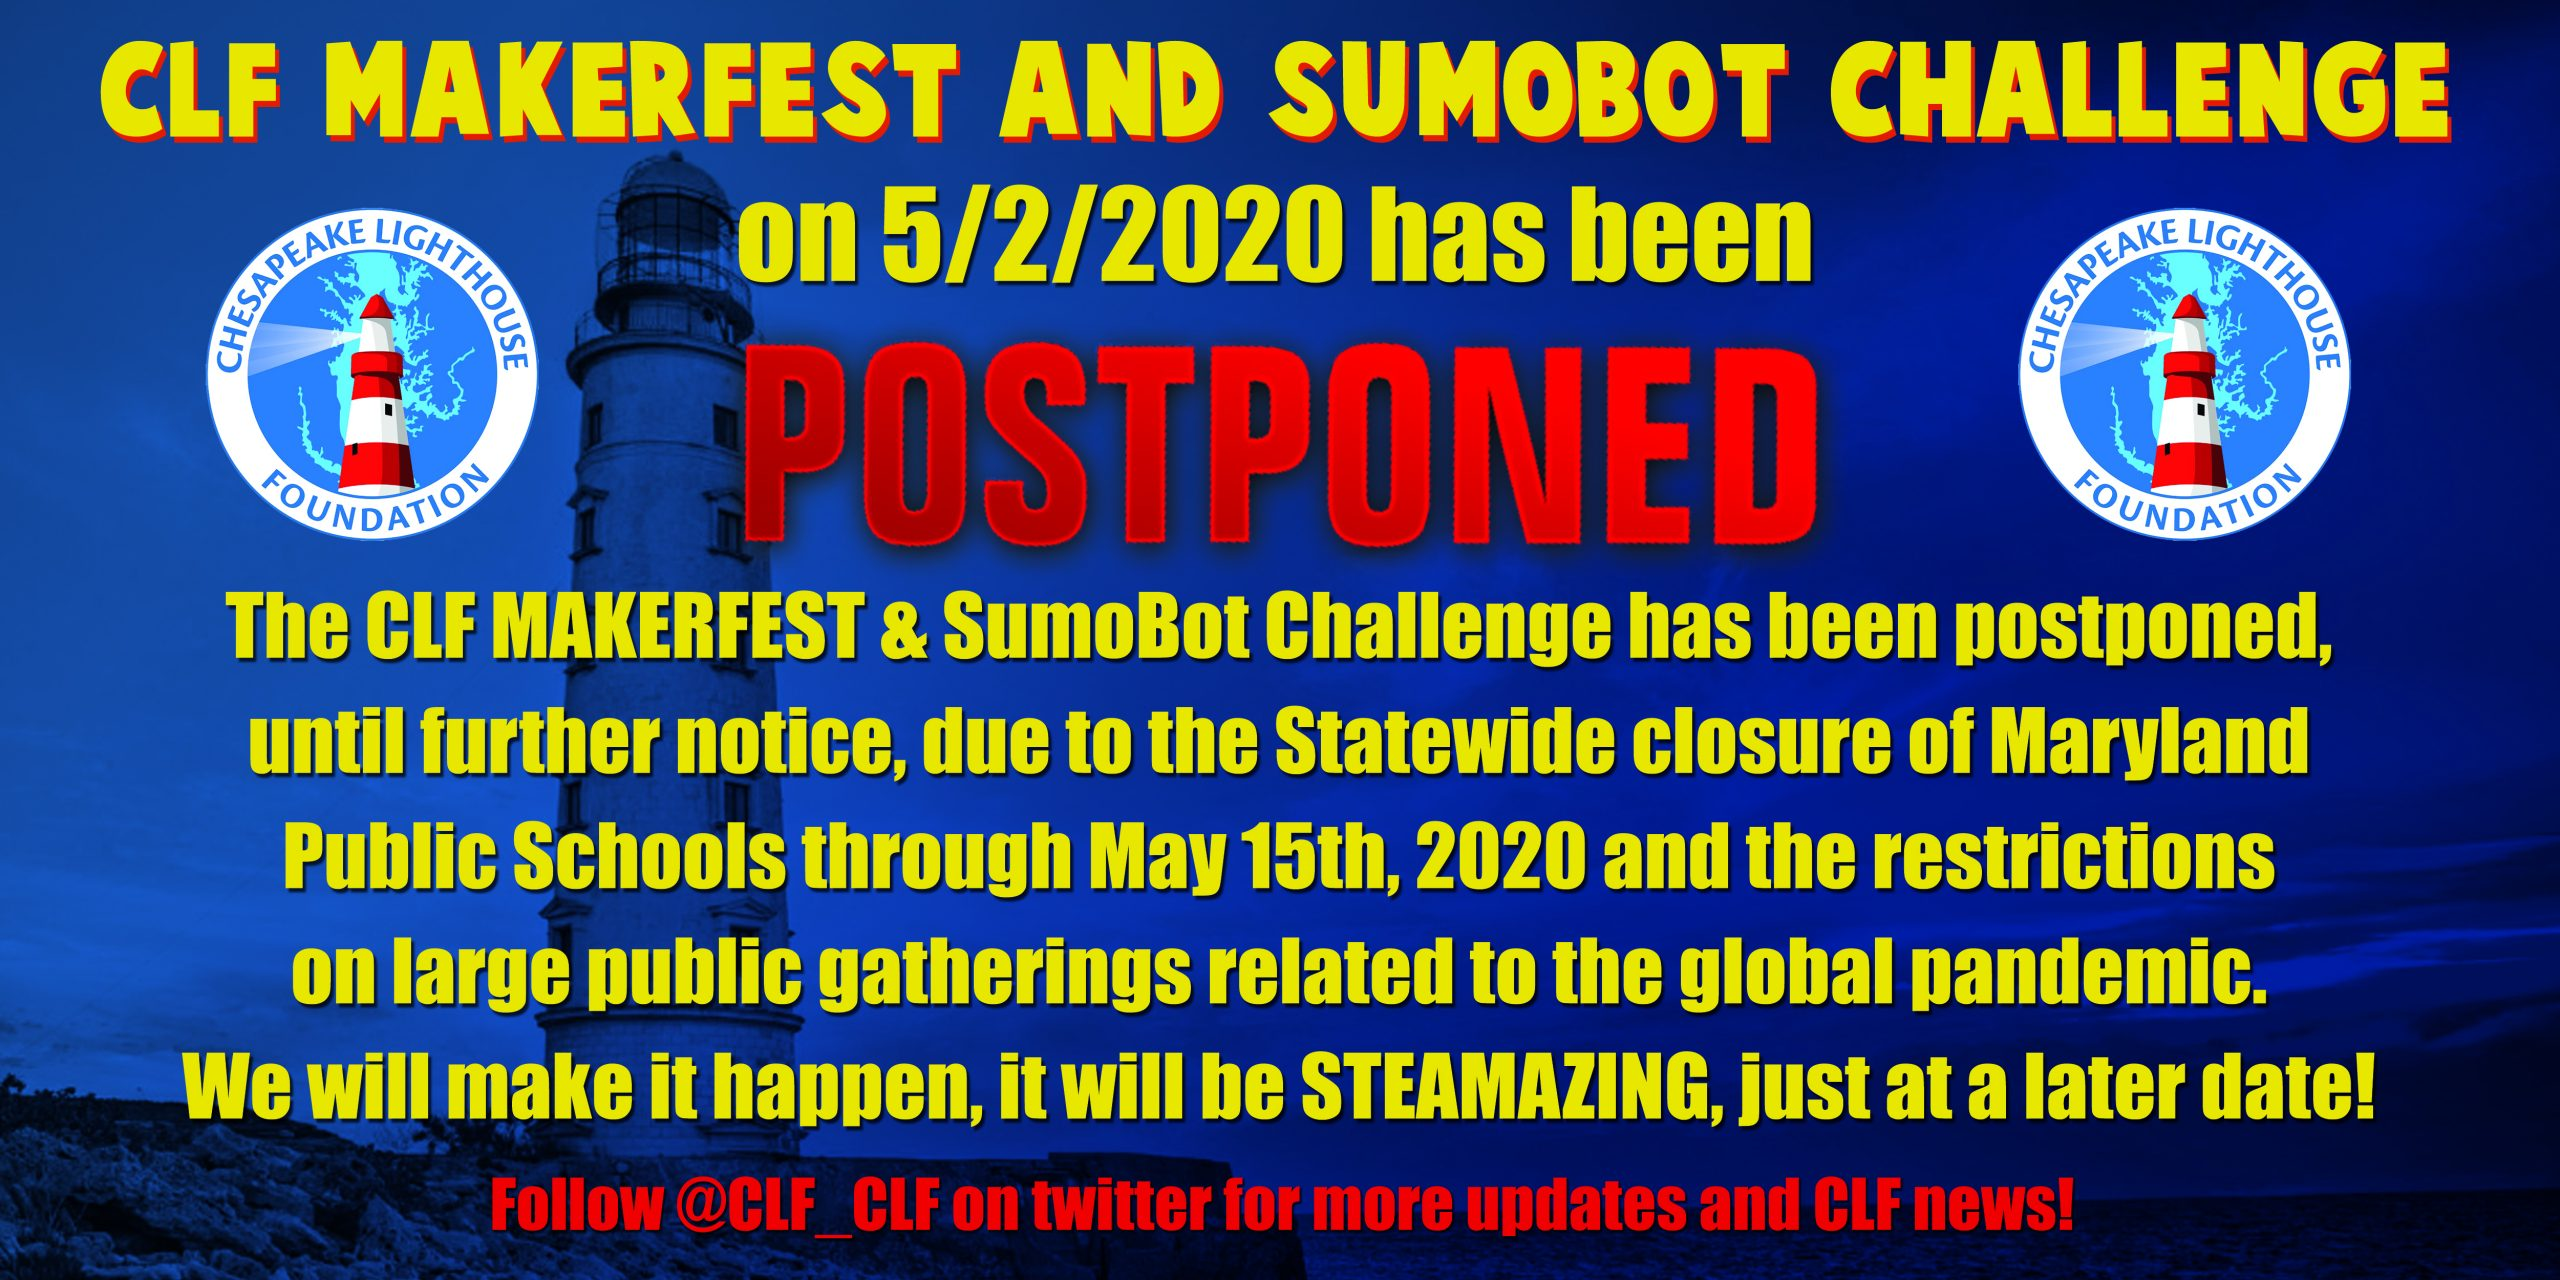 CLF MakerFEST and SumoBot Challenge have been POSTPONED